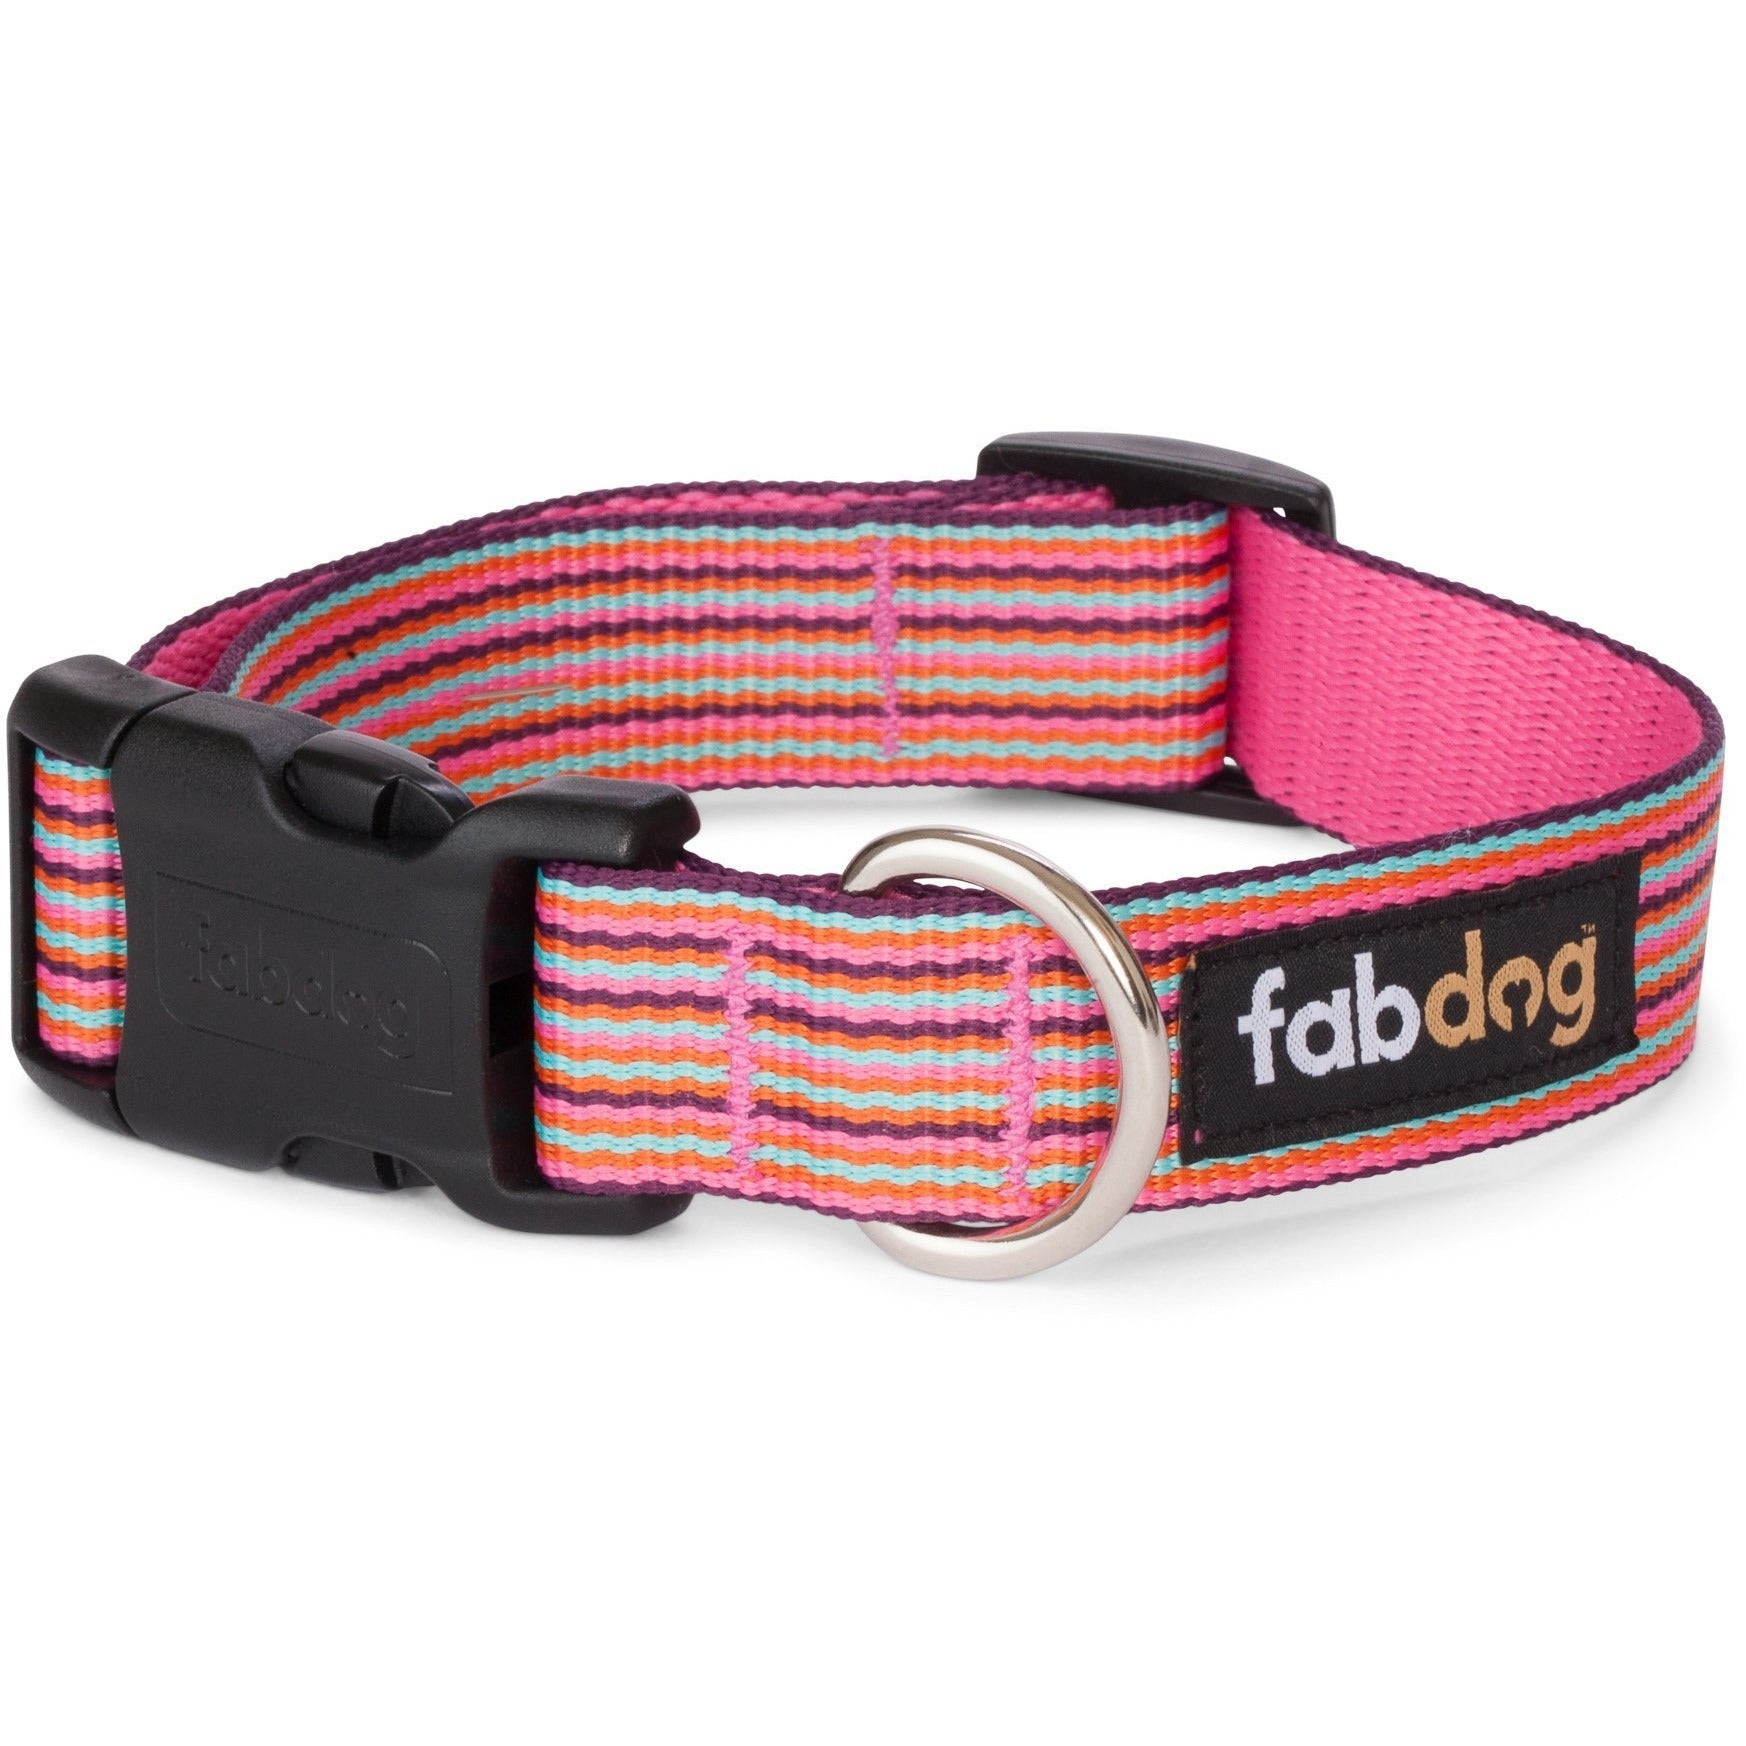 fabdog collar Pink mini stripe dog collar by Fabdog